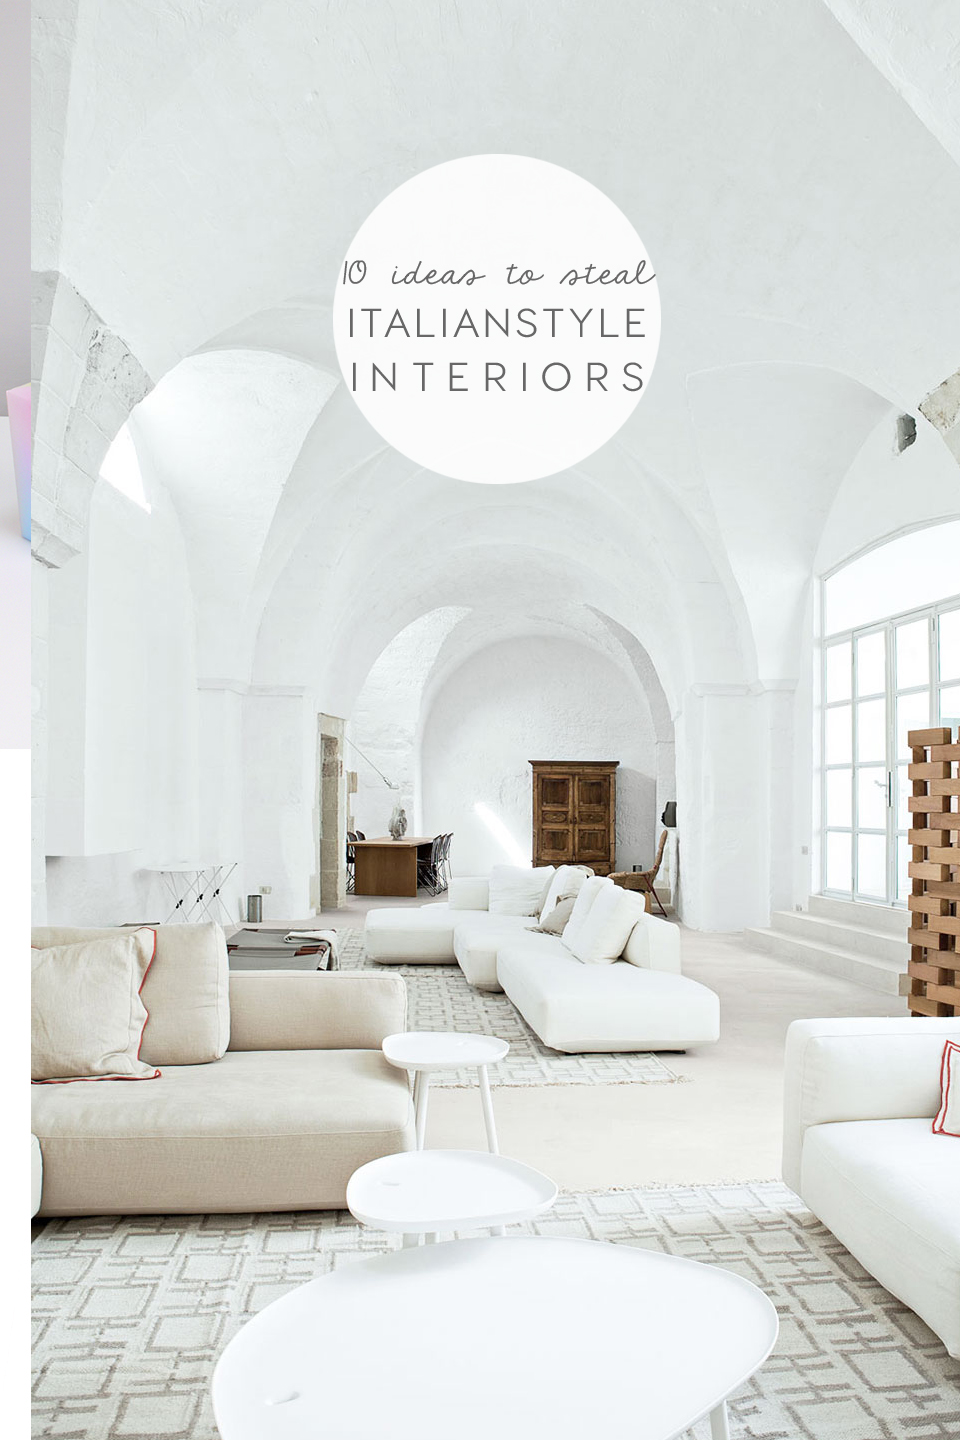 Italian style interiors 10 top ideas to steal from for Interiors design blog